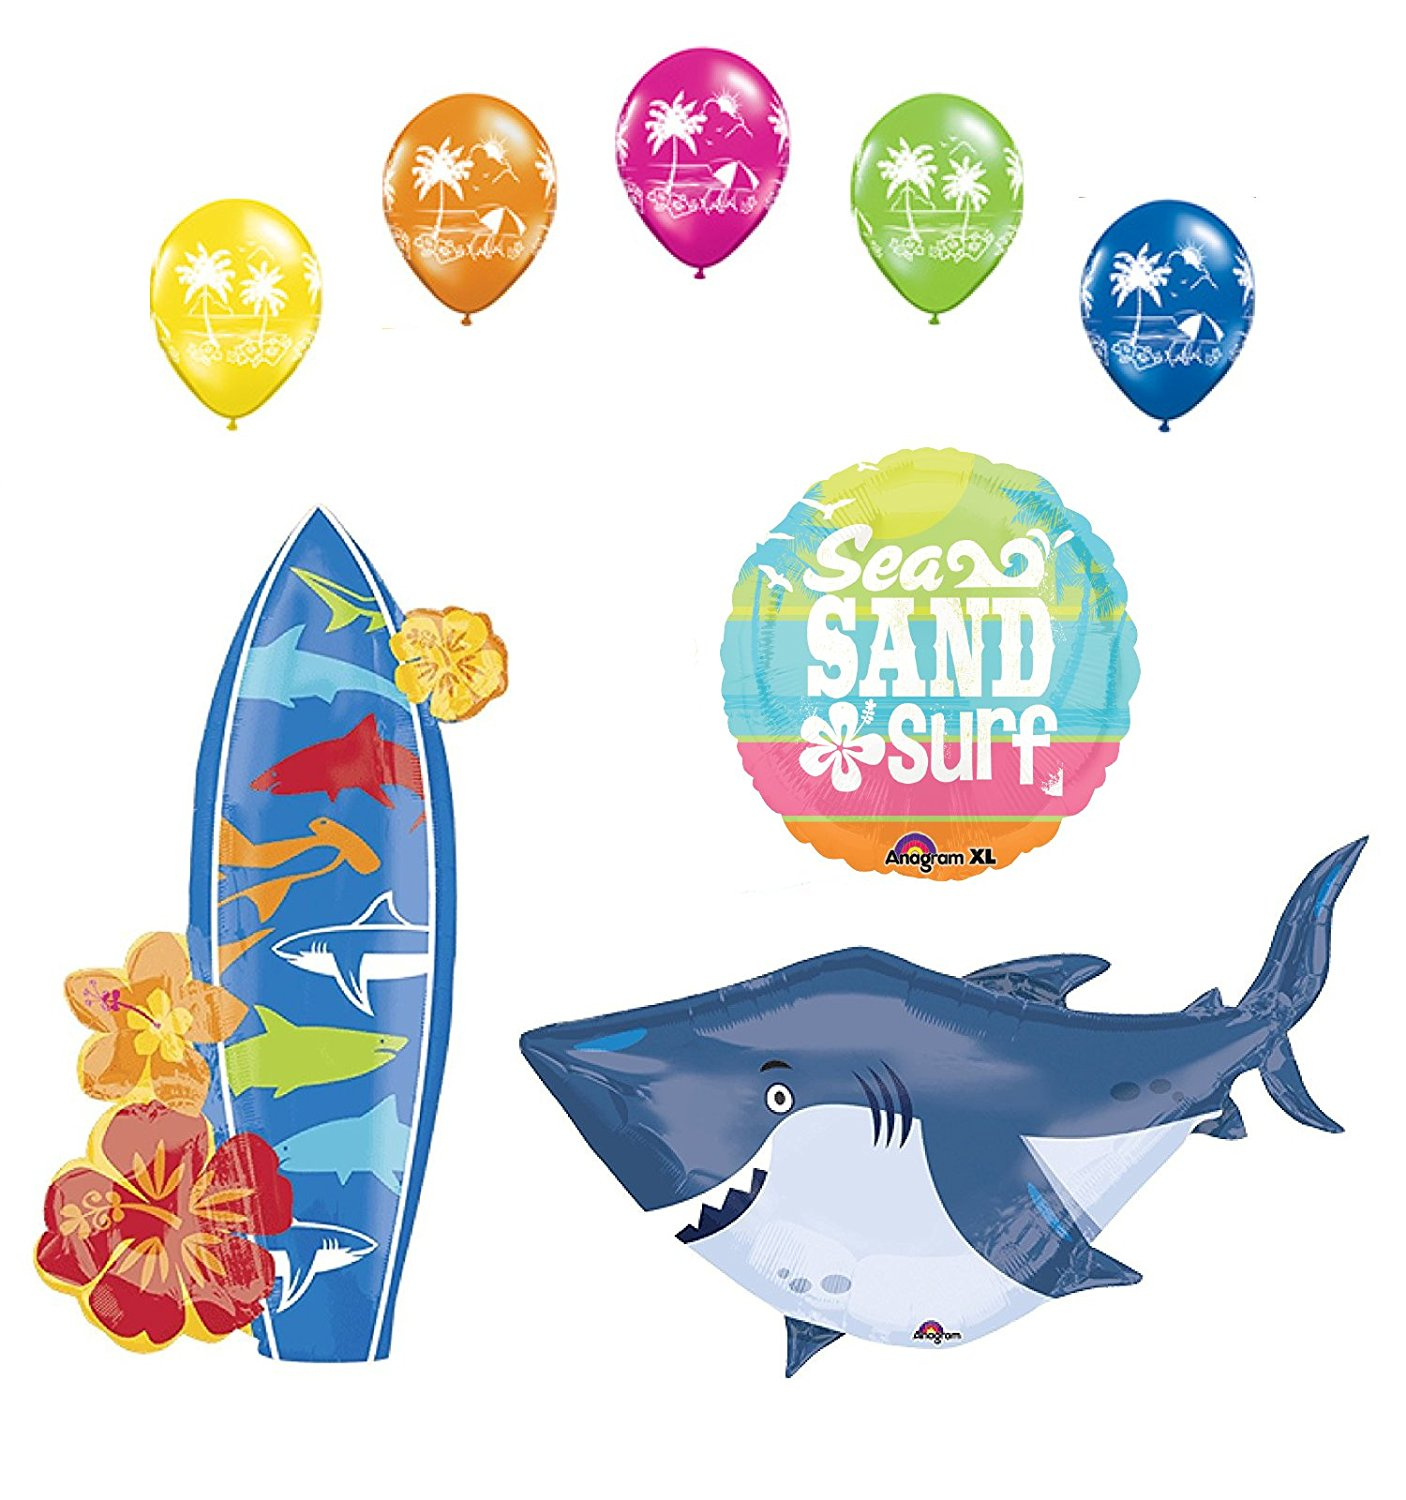 Beach Luau Party Supplies Shark and Surfboard Balloon Bouquet Decorations, (1) 40 Ocean Buddies Shark Foil Balloon By Mayflower Products